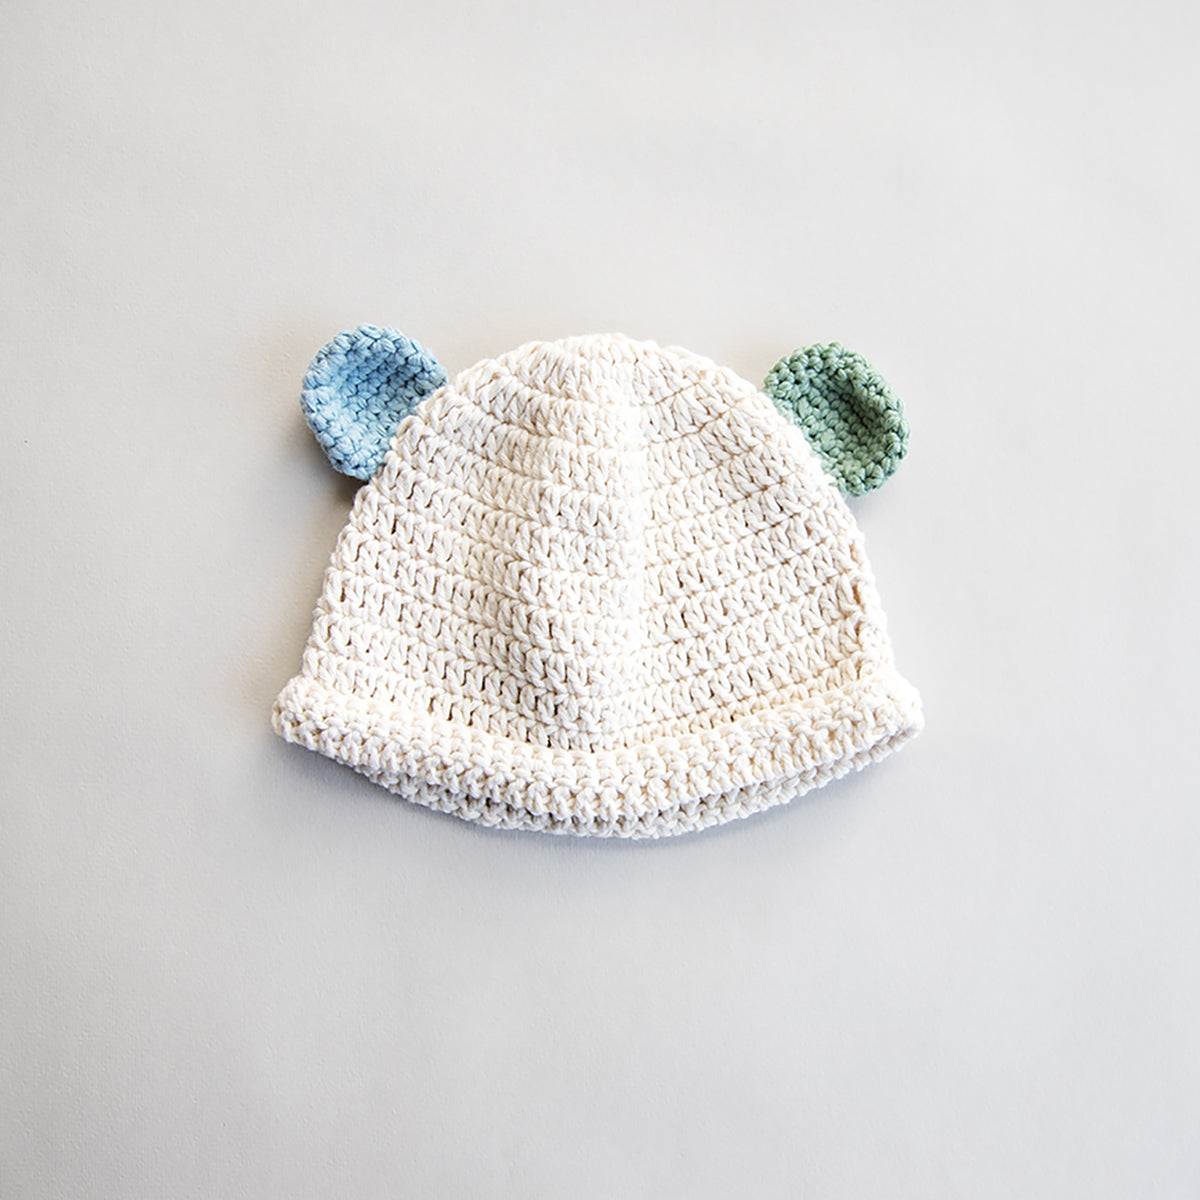 Designer Crocheted Baby Hat and Booties Set e22d6c48d82